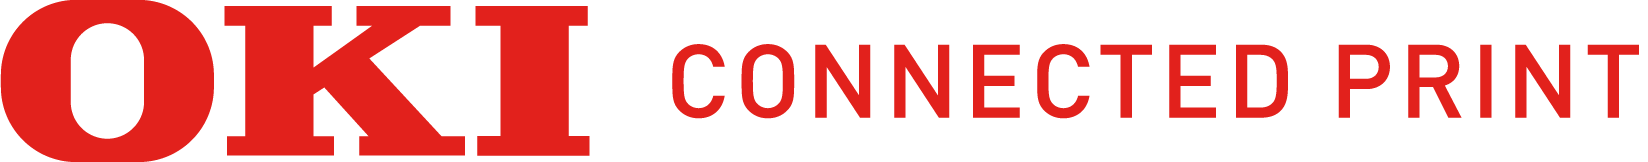 Horizontal OKI Connected Print logo